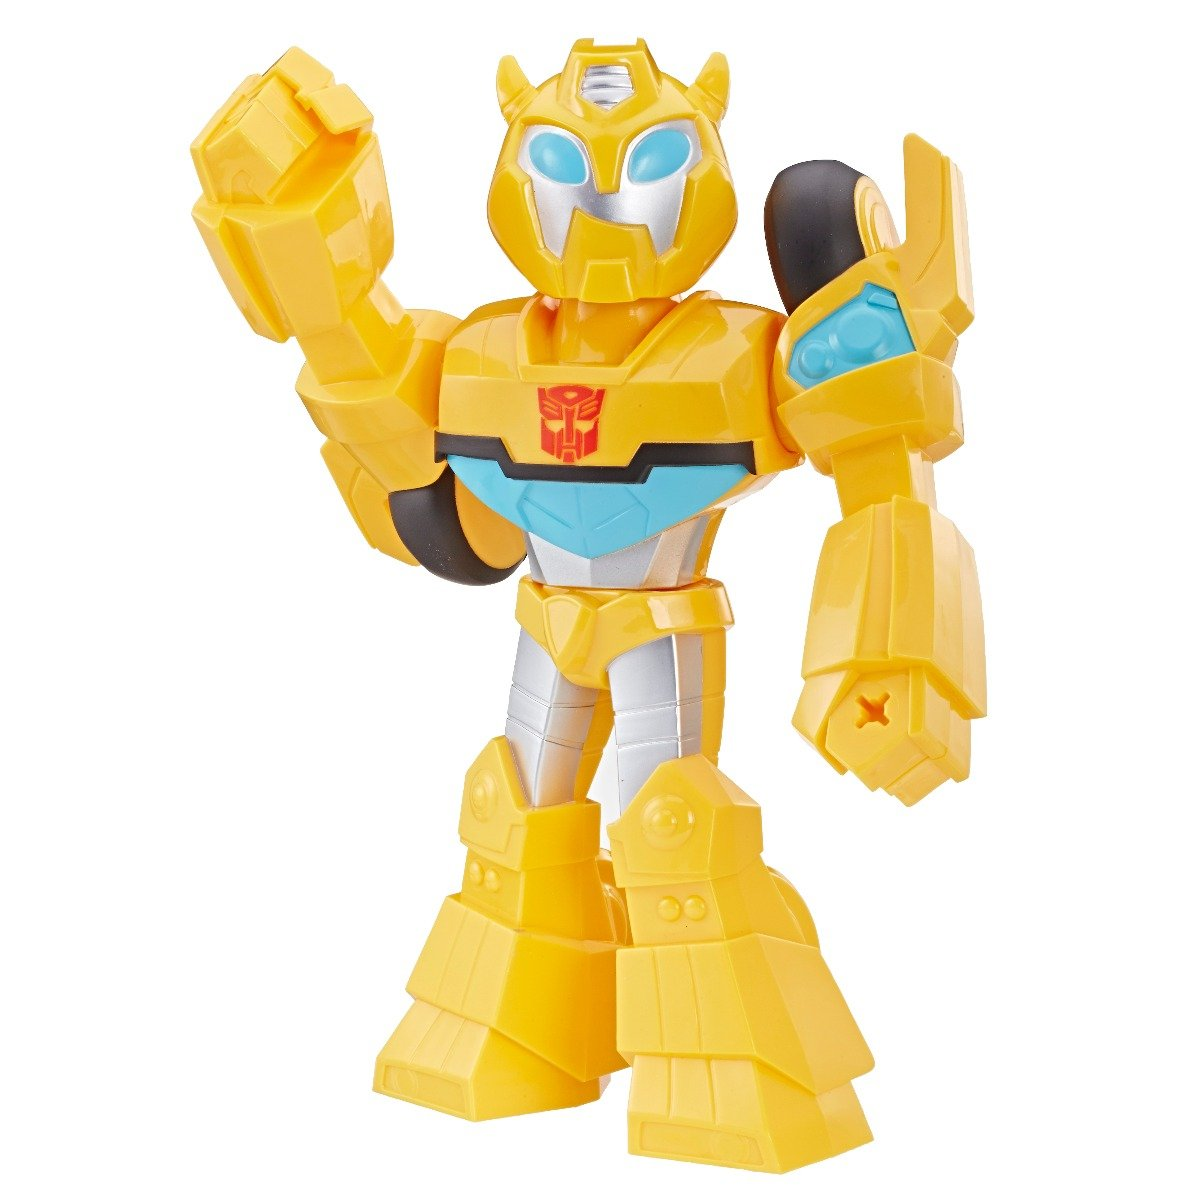 Figurina Transformers Mega Mighties Bumblebee